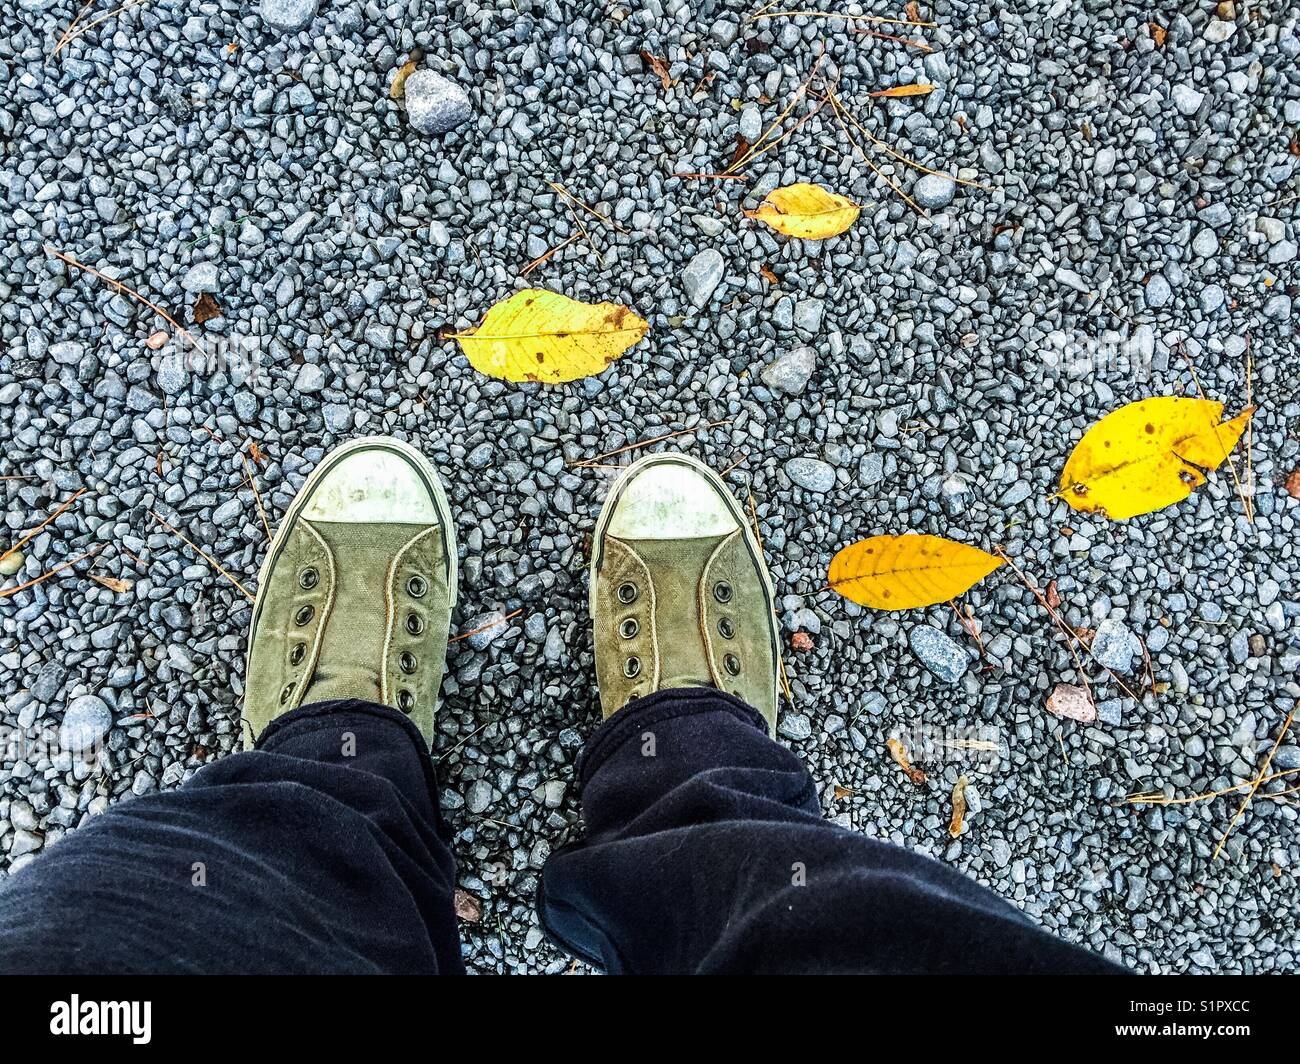 Birdseye view of person wearing green vintage sneakers standing on gravel with yellow fall leaves - Stock Image